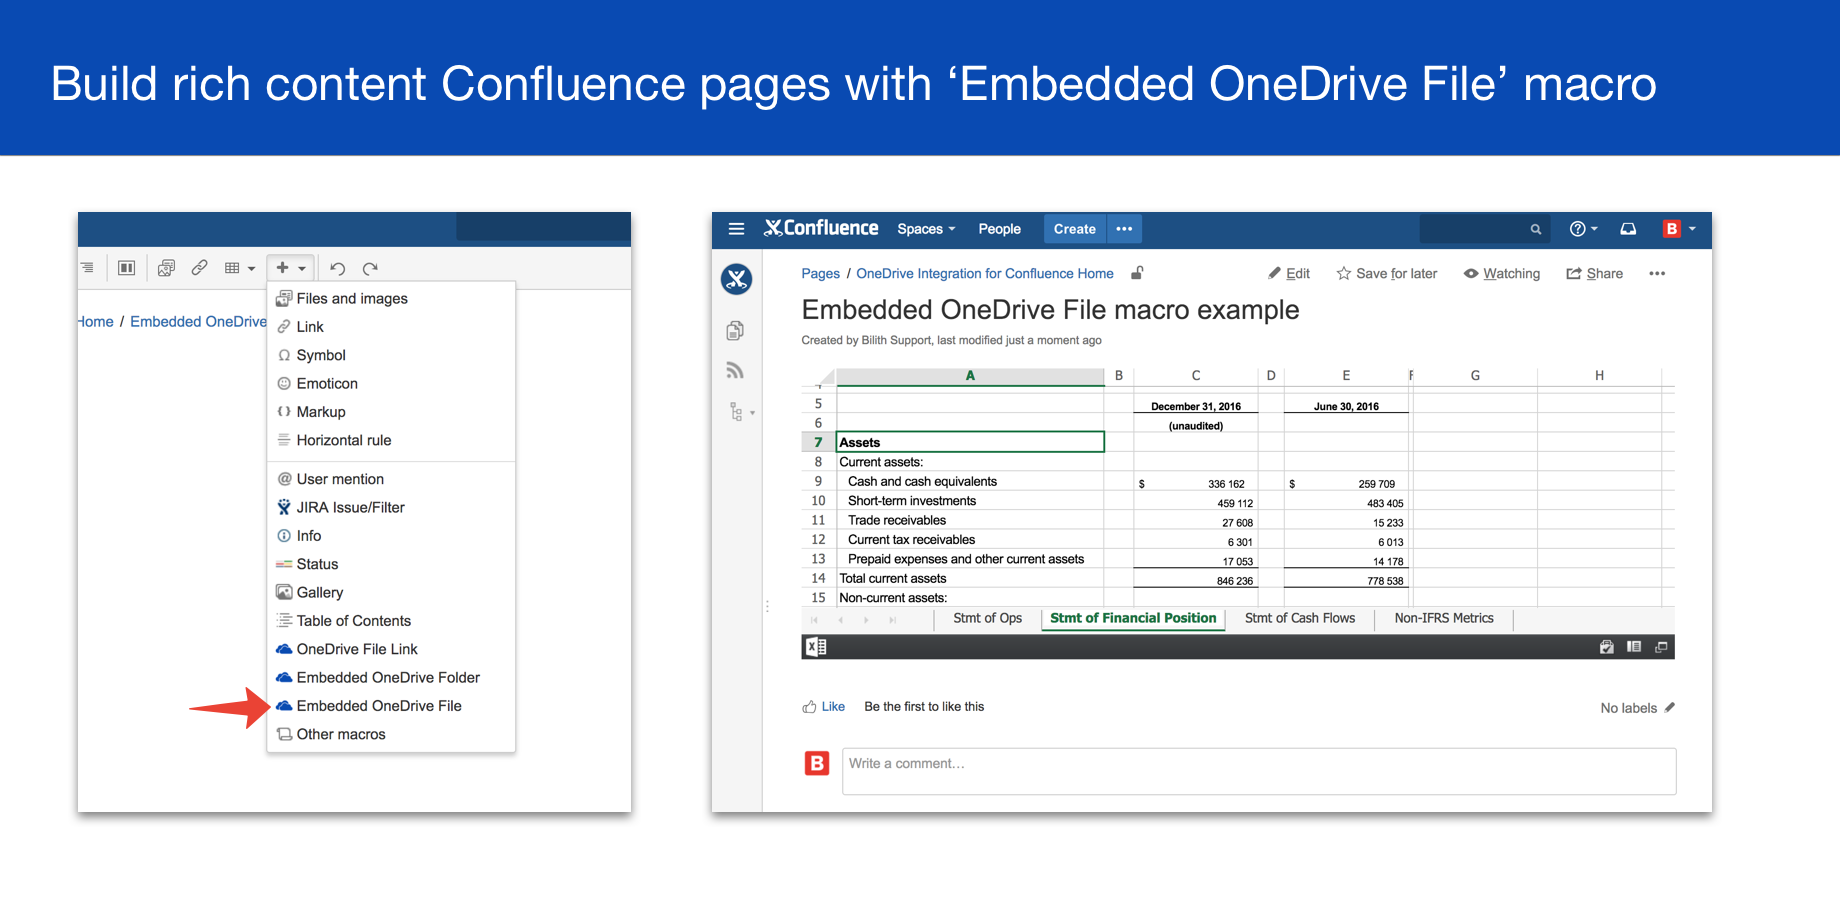 OneDrive & SharePoint for Confluence 3